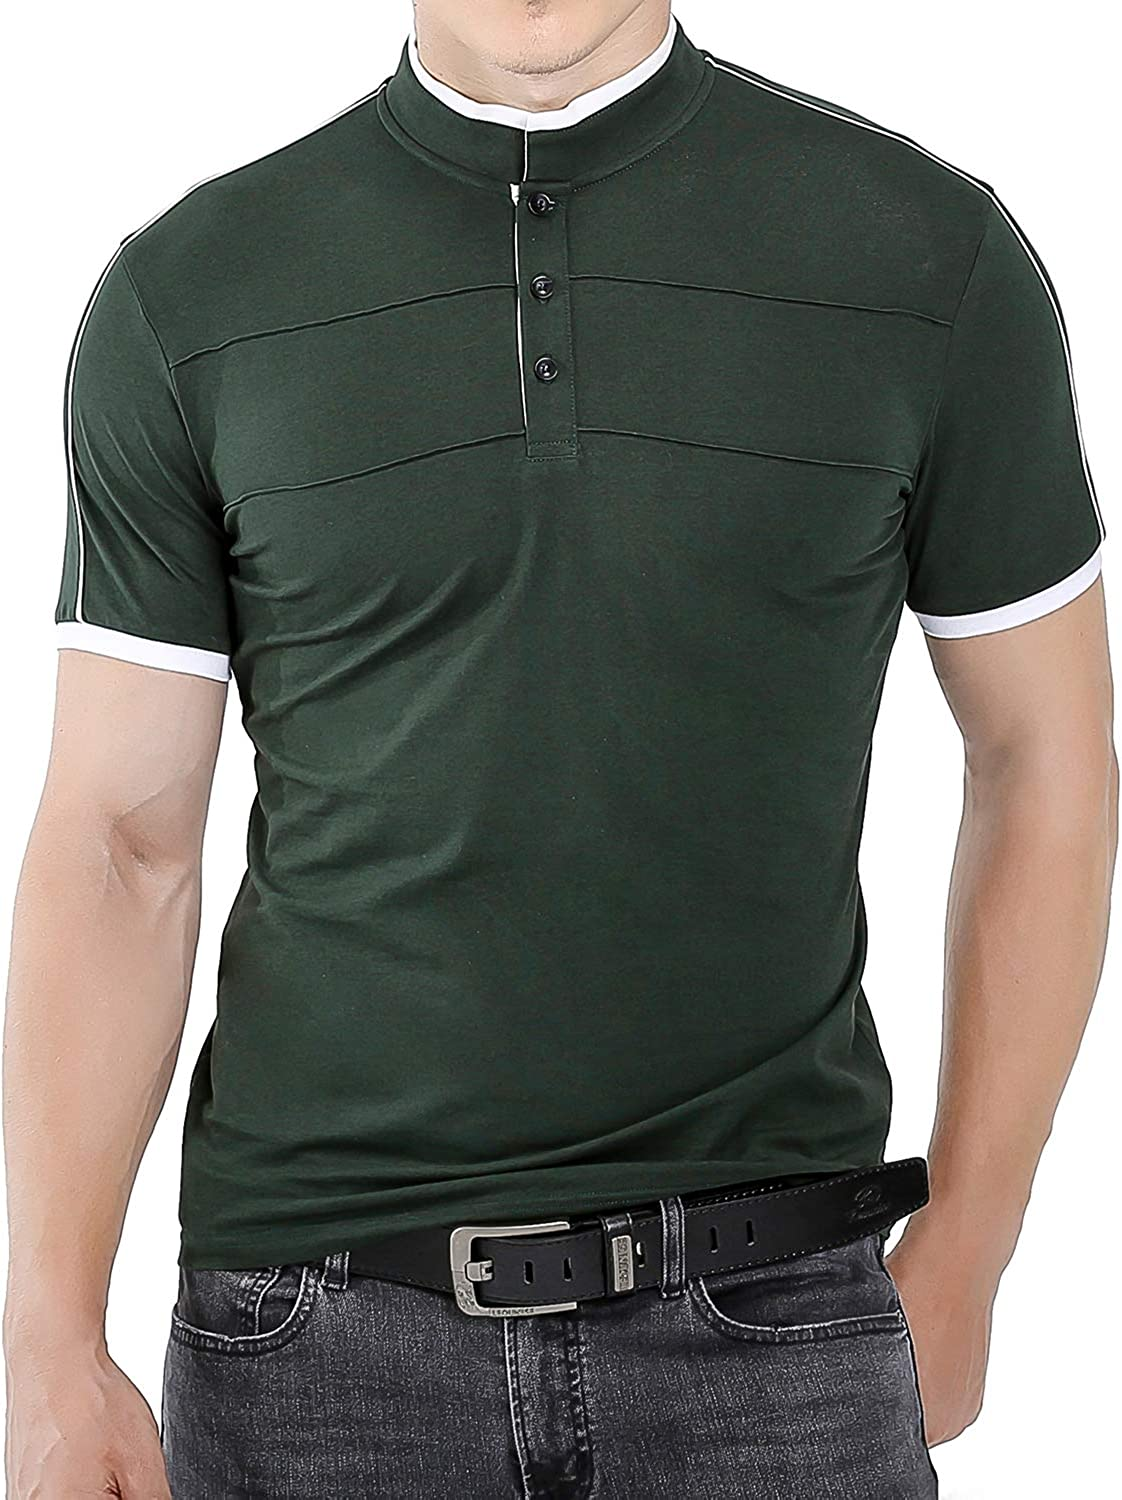 Kareas Mens Fashion Surprise price Polo Shirt Casual Sleev Slim Pique Louisville-Jefferson County Mall Fit Short